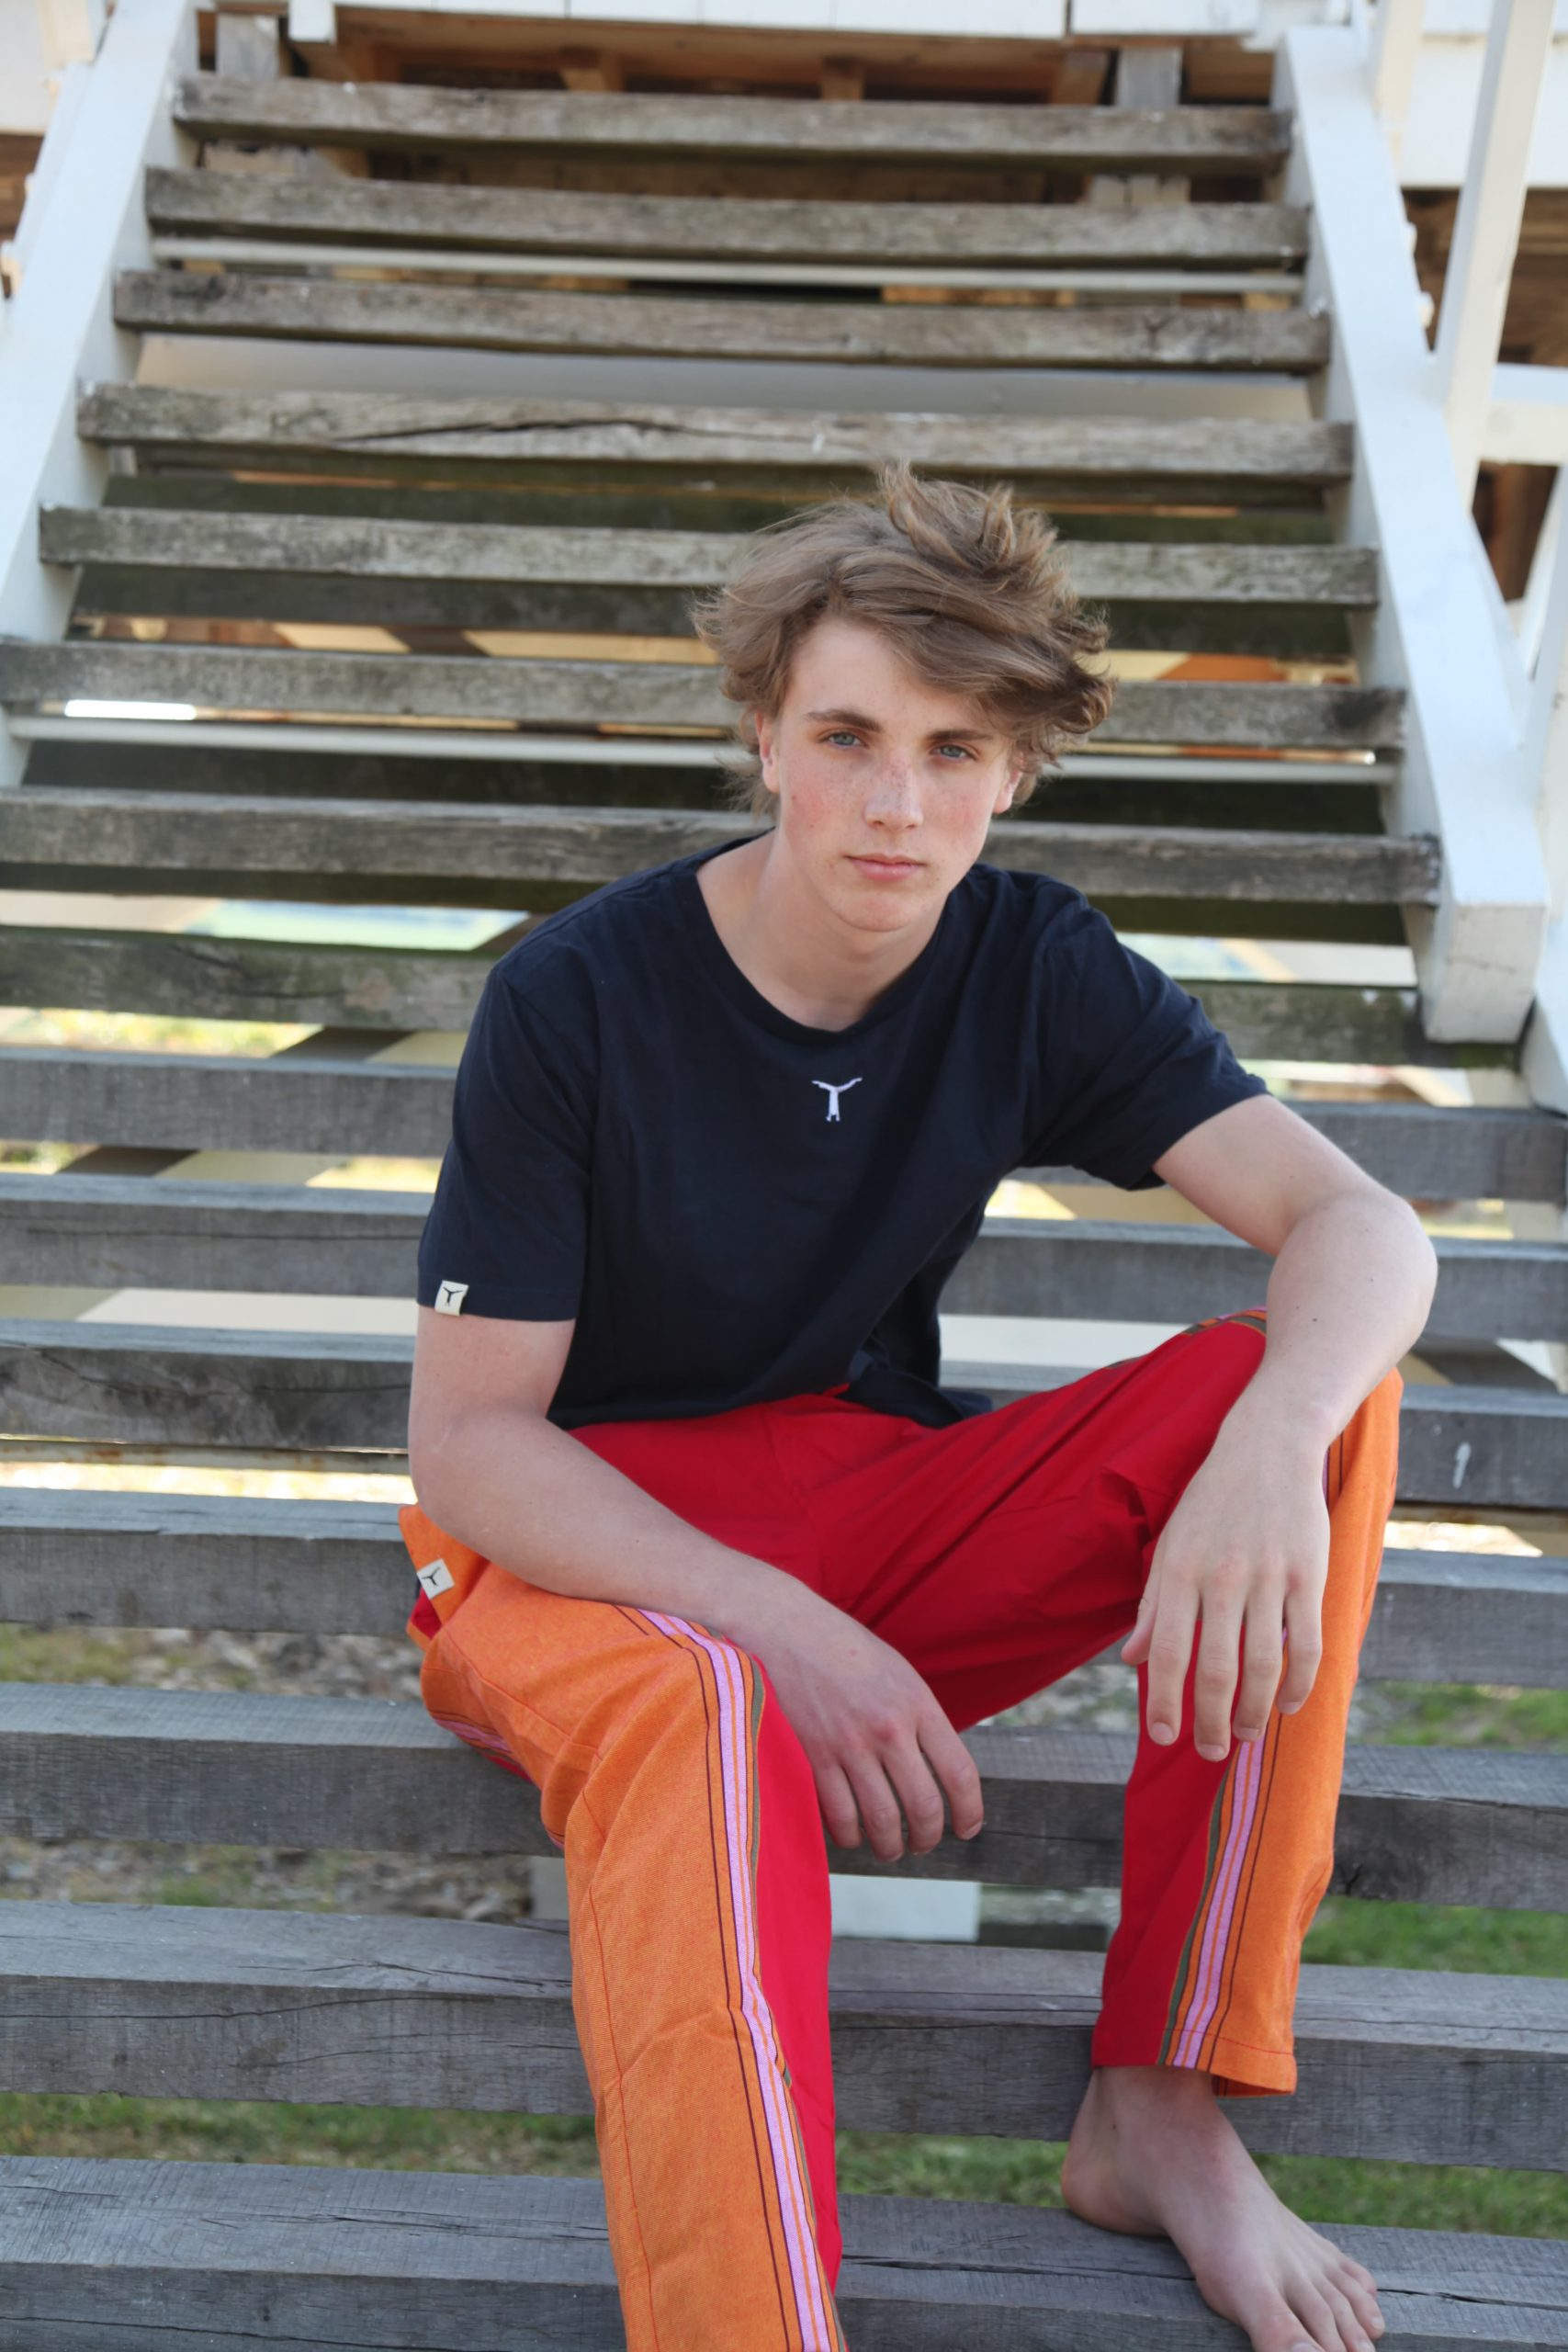 Young man sitting on outdoor wooden stairs wearing a black t-shirt and red and orange kikoy yoga pants